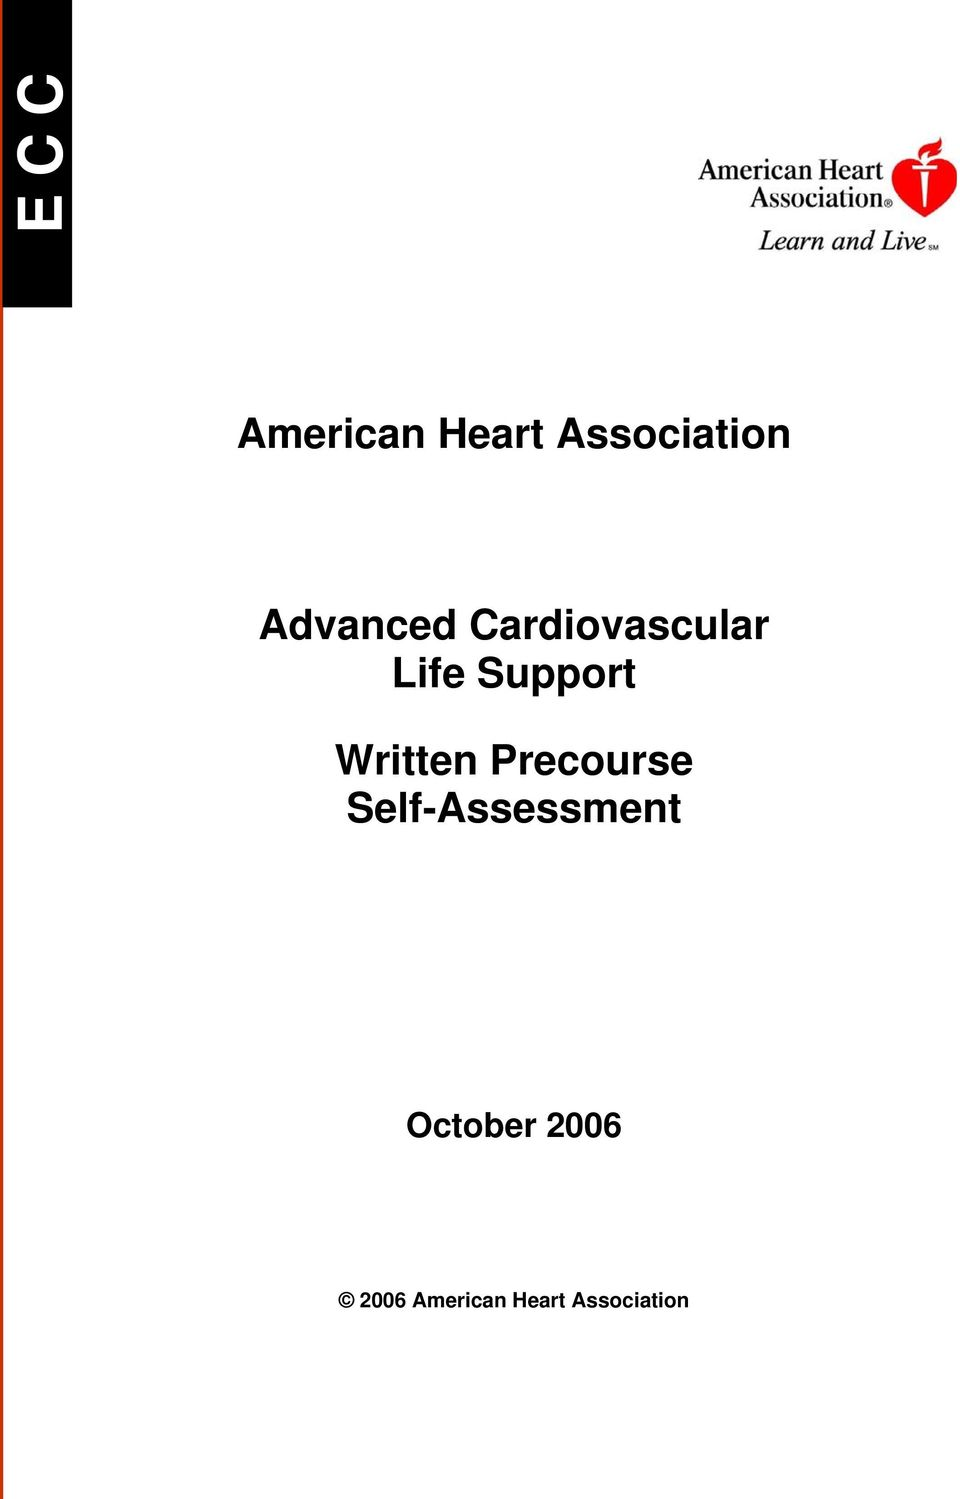 Cardiovascular Life Support